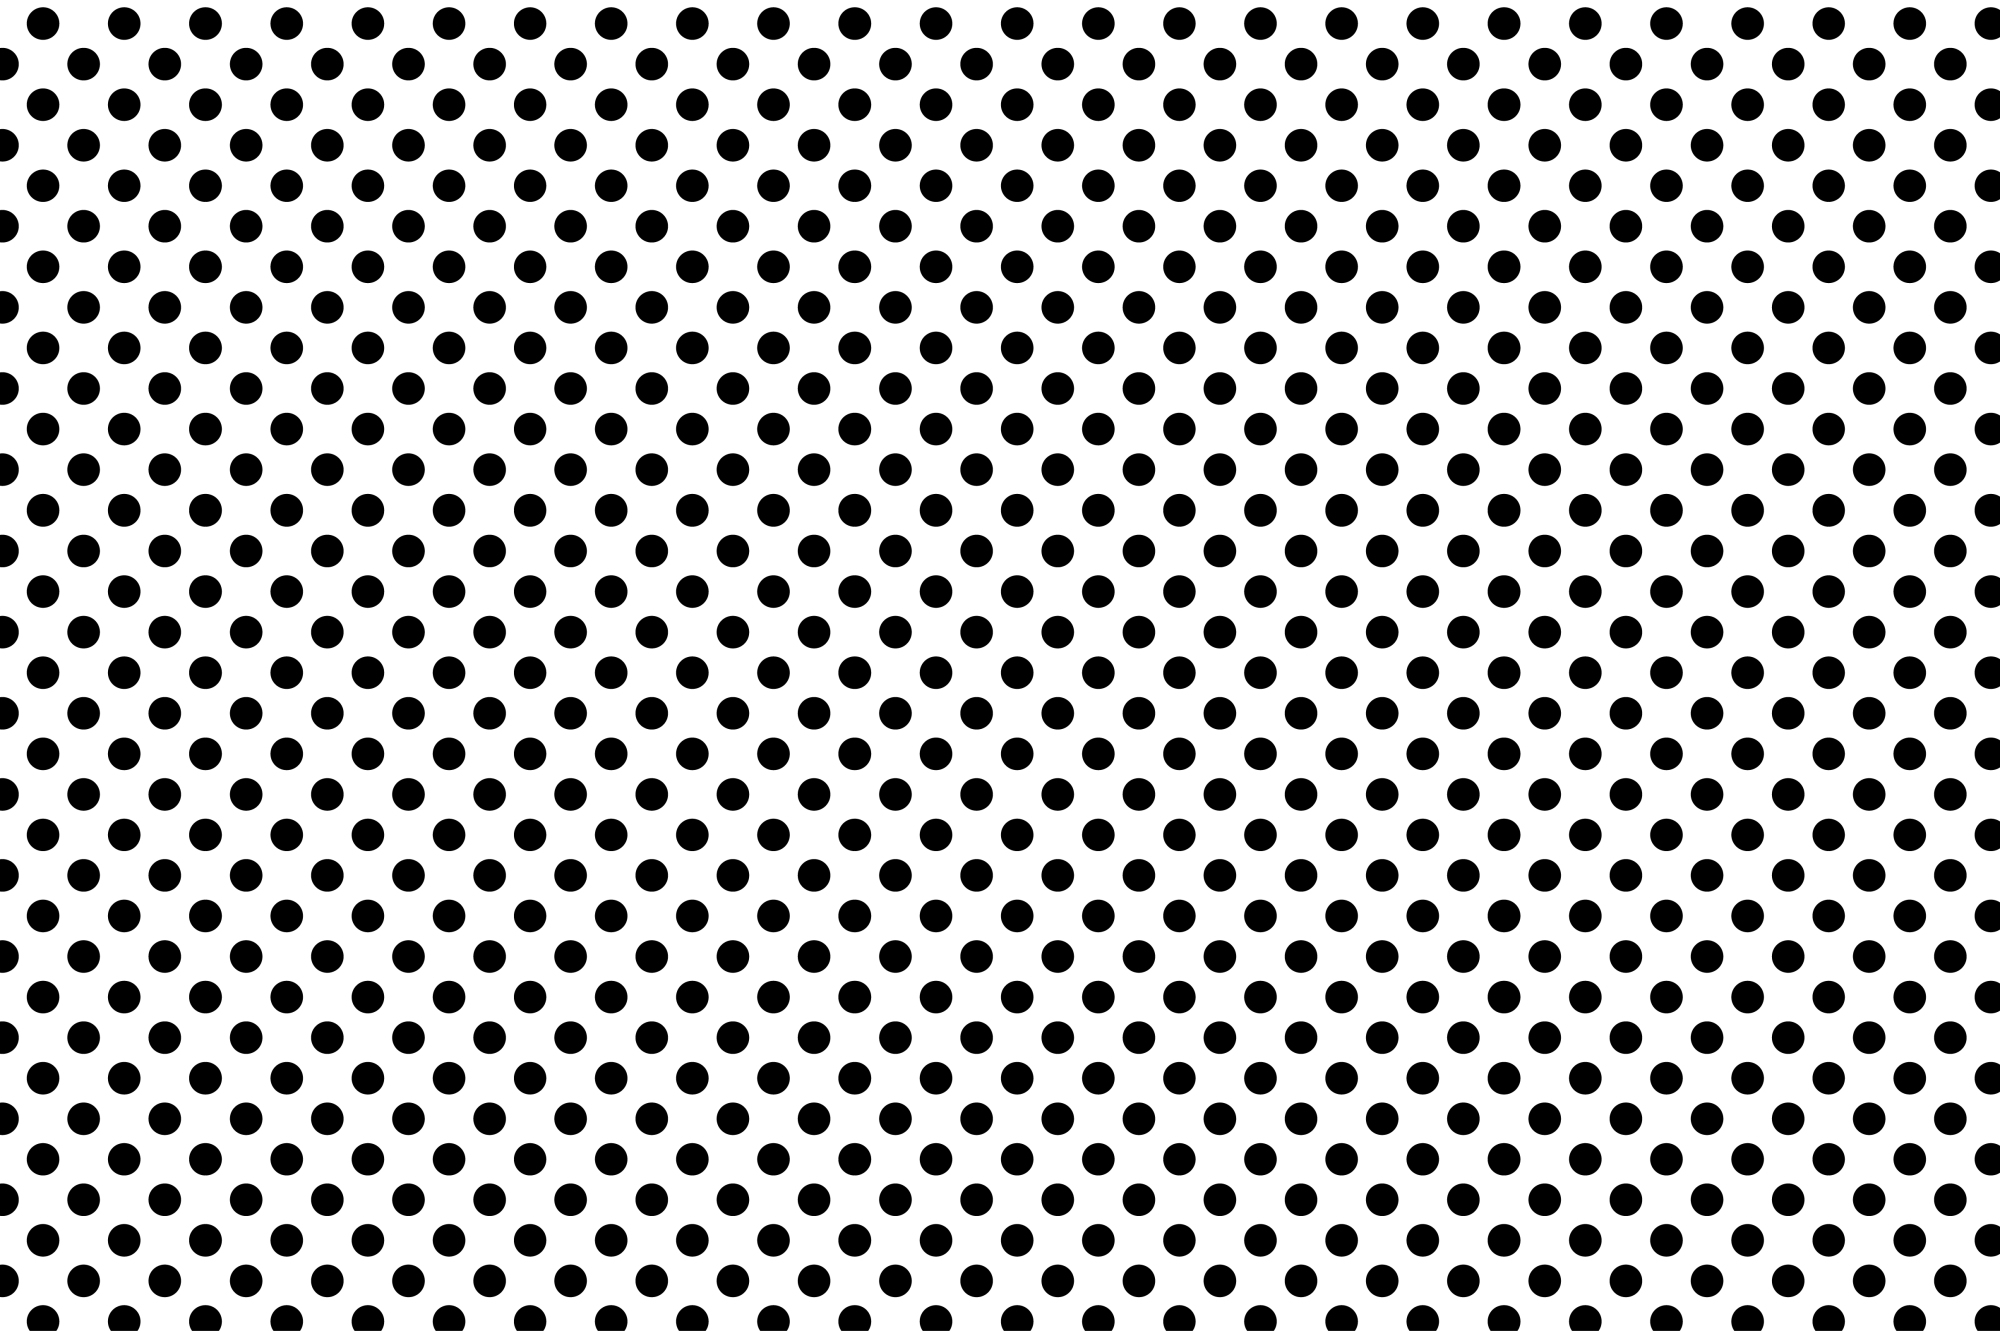 Set of dotted seamless patterns. example image 25